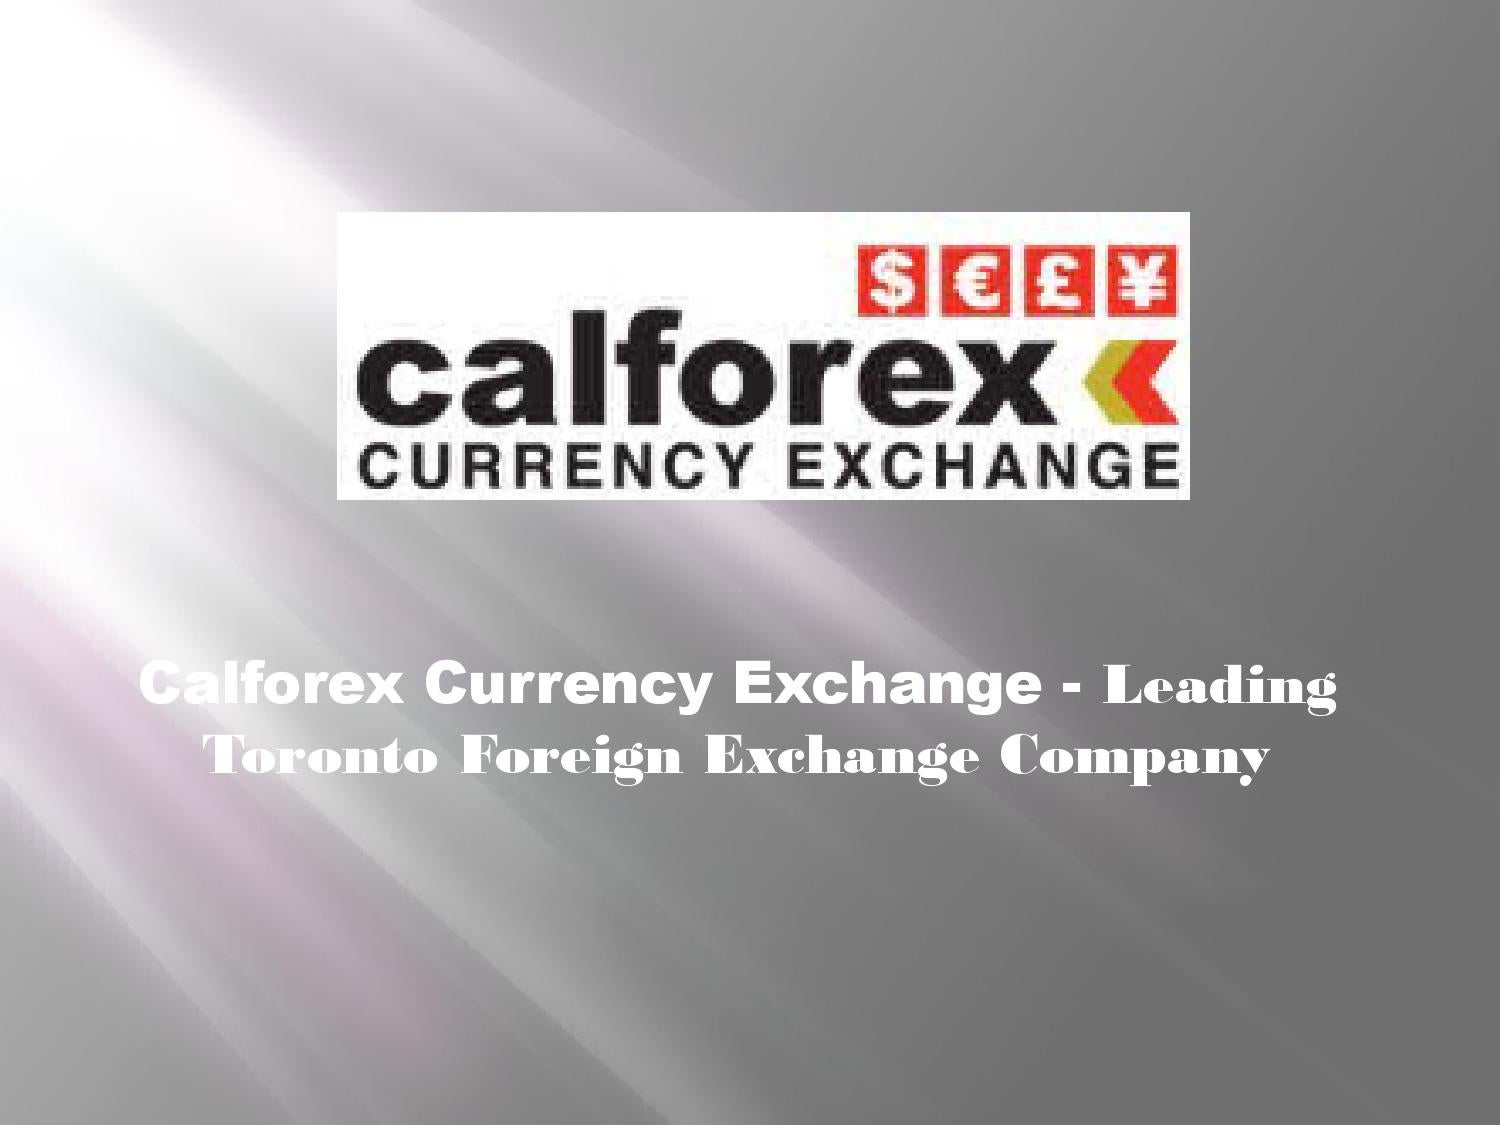 Calforex Currency Exchange Leading Toronto Foreign Company By Calforexto Issuu